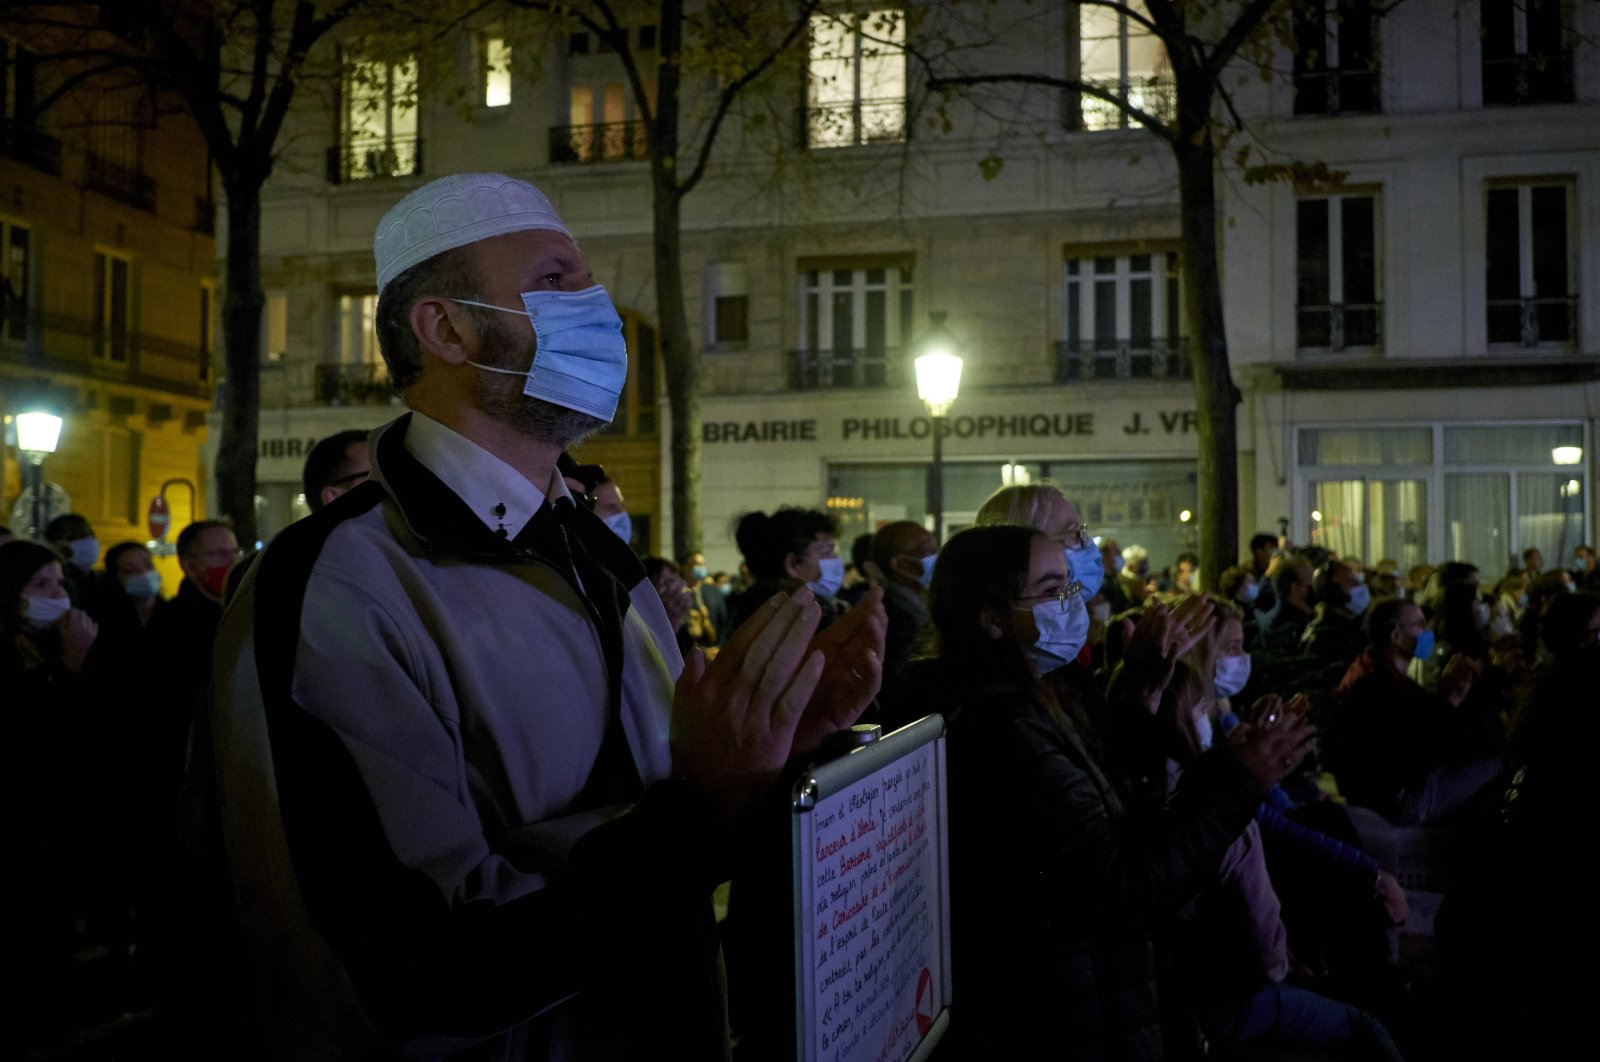 People gather on the Place de la Sorbonne to watch a live broadcast on a giant screen of the national tribute to the French history teacher Samuel Paty, who was killed in a terrorist attack, in the capital Paris, France, Oct. 21, 2020. (Photo by Getty Images)